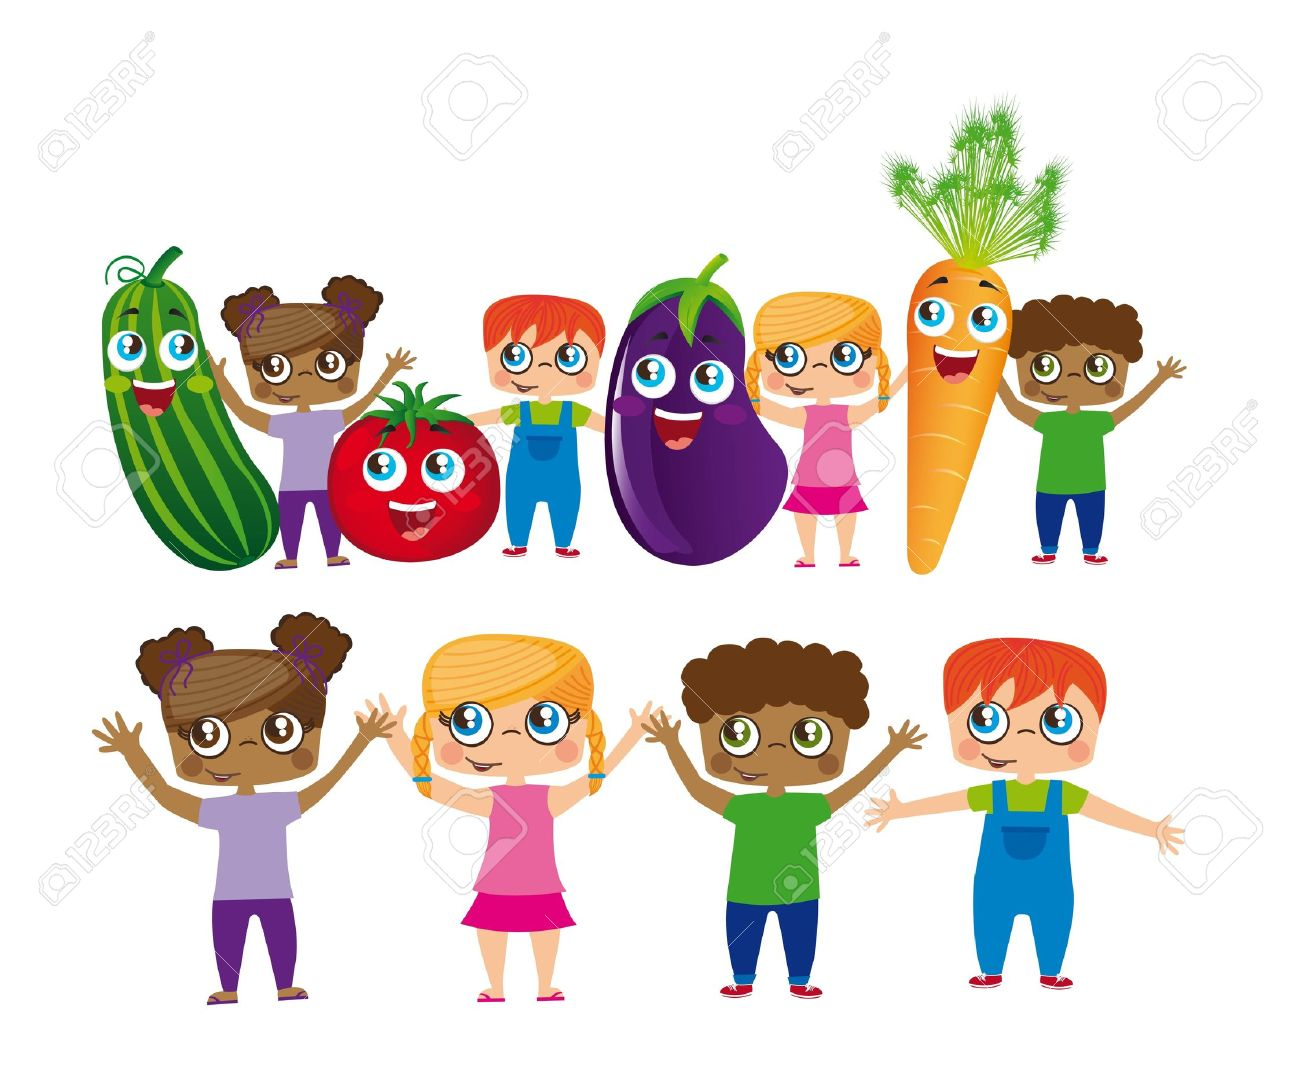 childs with vegetables cartoons isolated over white background. Stock Vector - 12948345